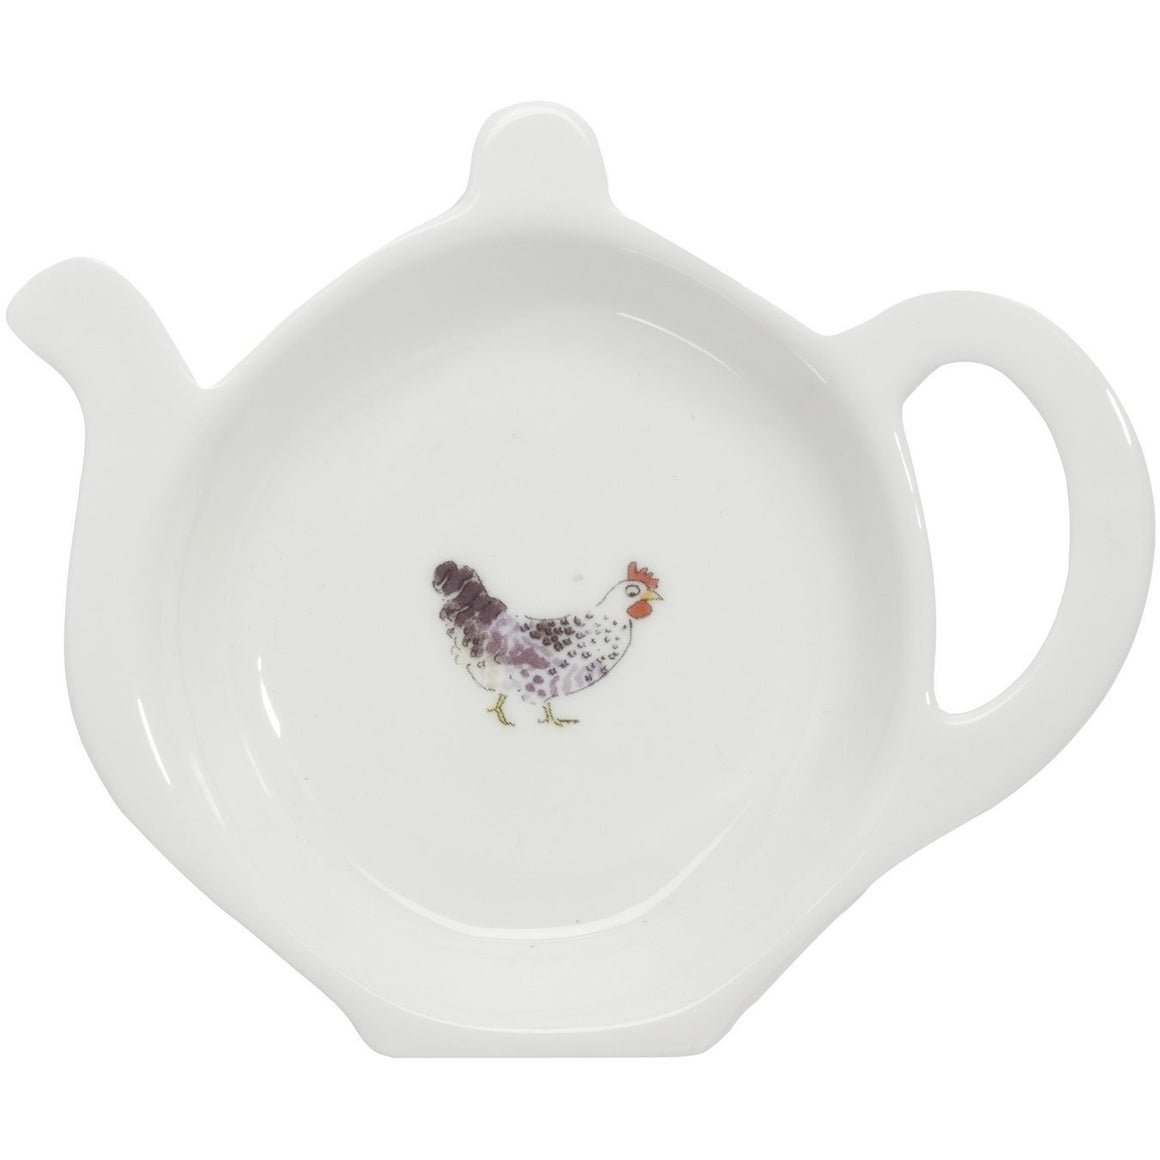 Sophie Allport Chicken Tea Tidy